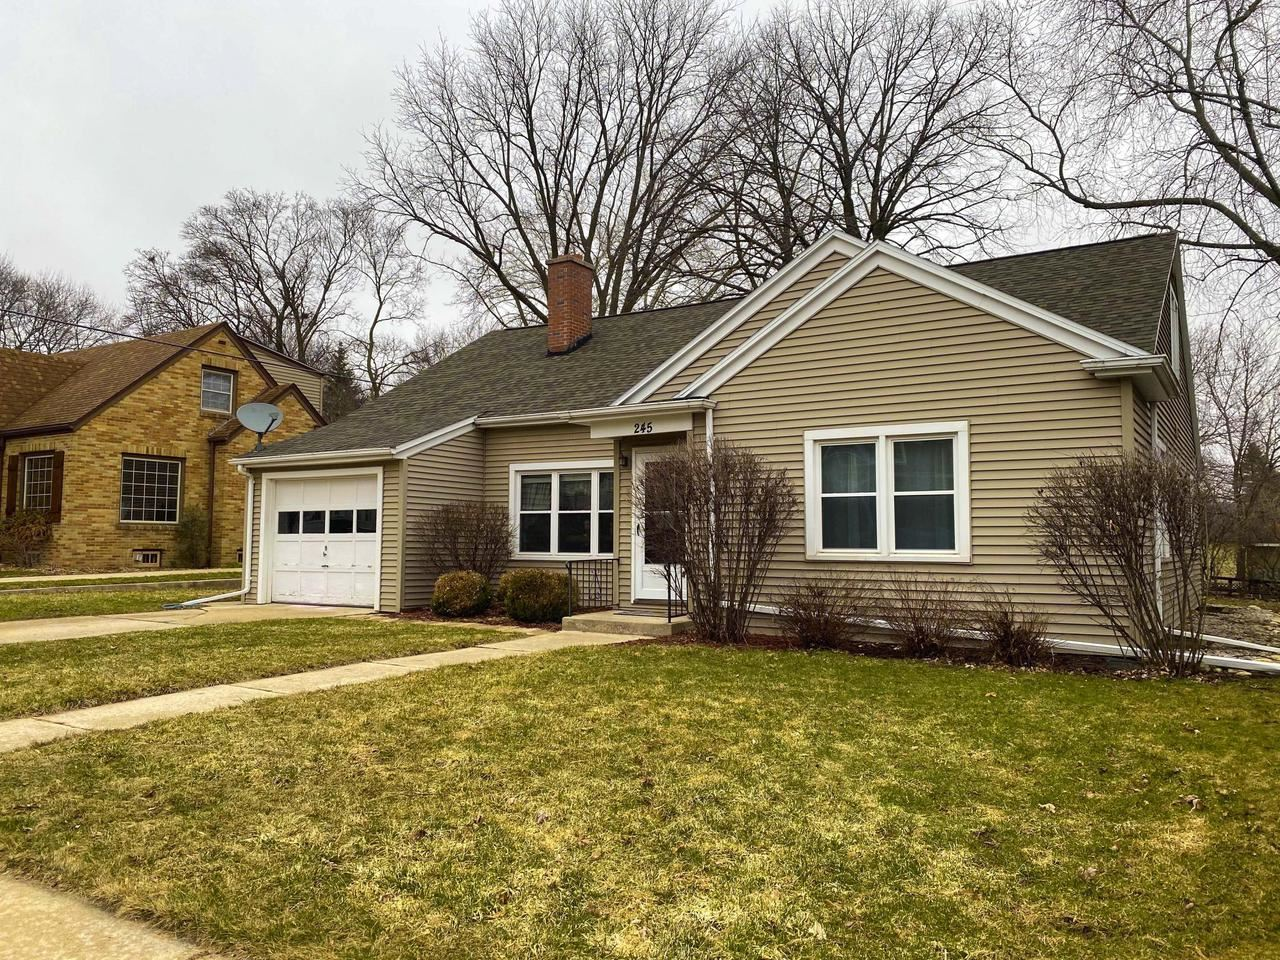 245 Mead Ave, Plymouth, WI 53073 - MLS#: 1683329